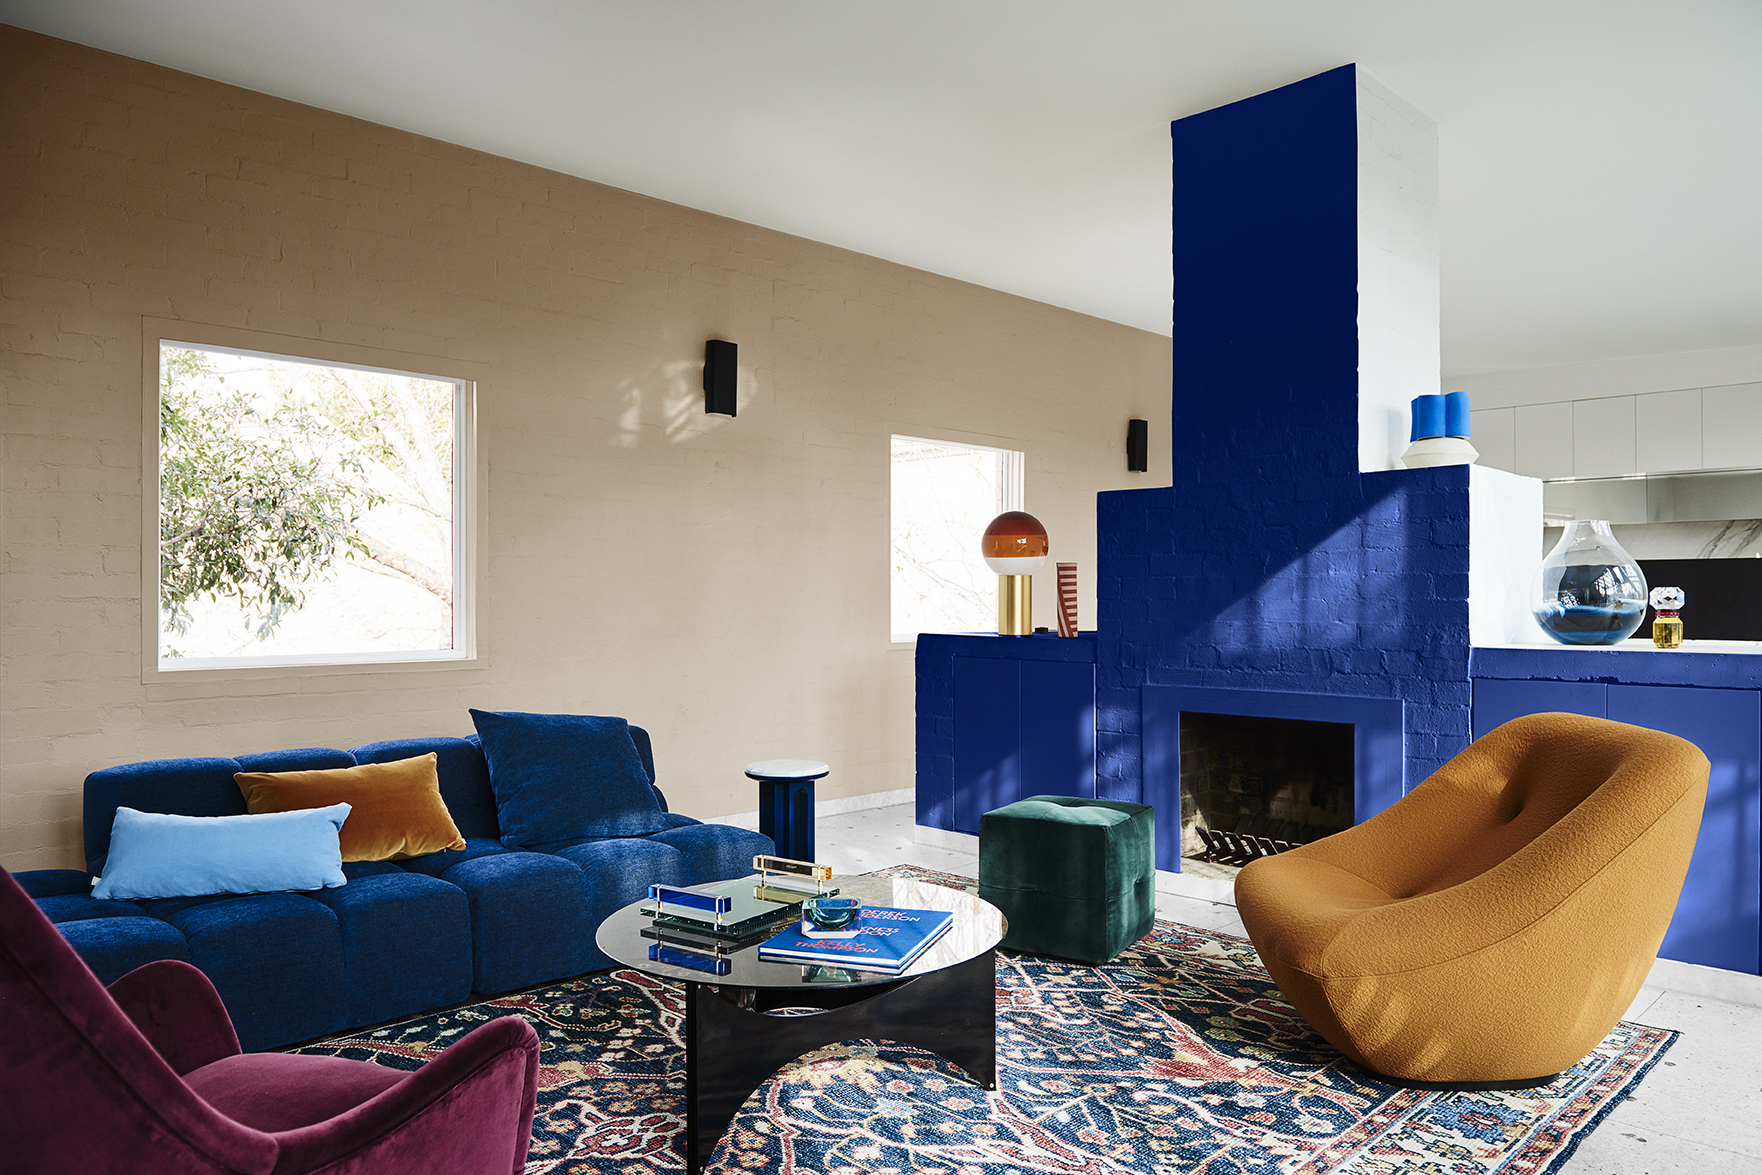 Styling by Bree Leech, Photographer Lisa Cohen.  Wall (rear) in Dulux Mt Maunganui, Fireplace sides and ceiling in Dulux Southern Alps, Fireplace in Dulux Master Blue.